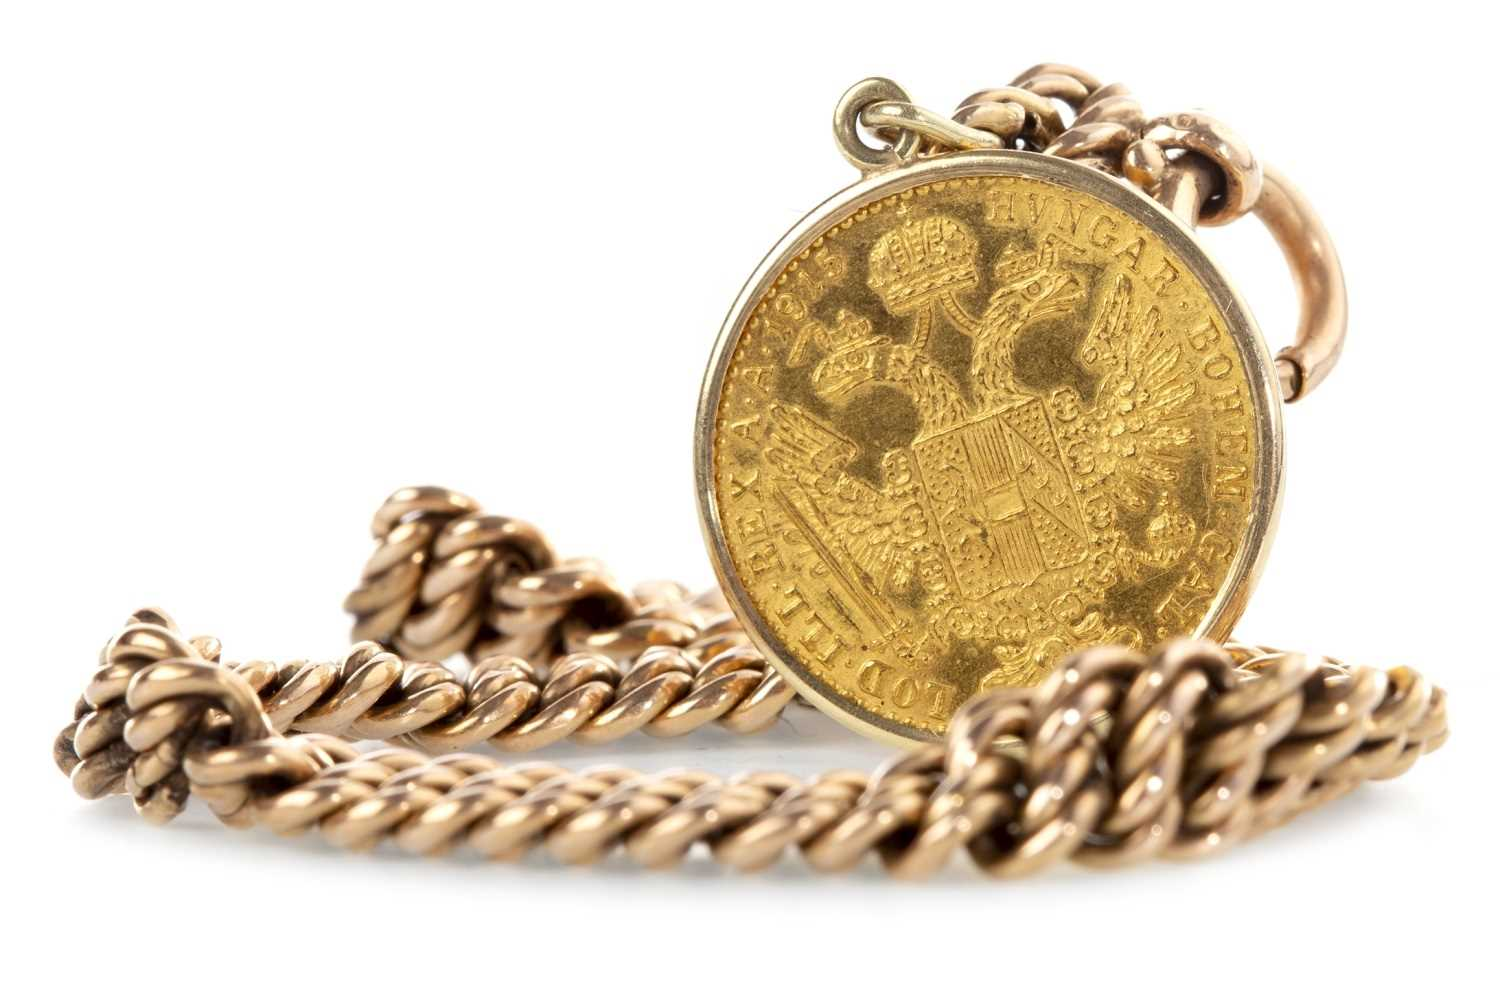 Lot 532-AN AUSTRIAN GOLD COIN DATED 1815 ON A BRACELET